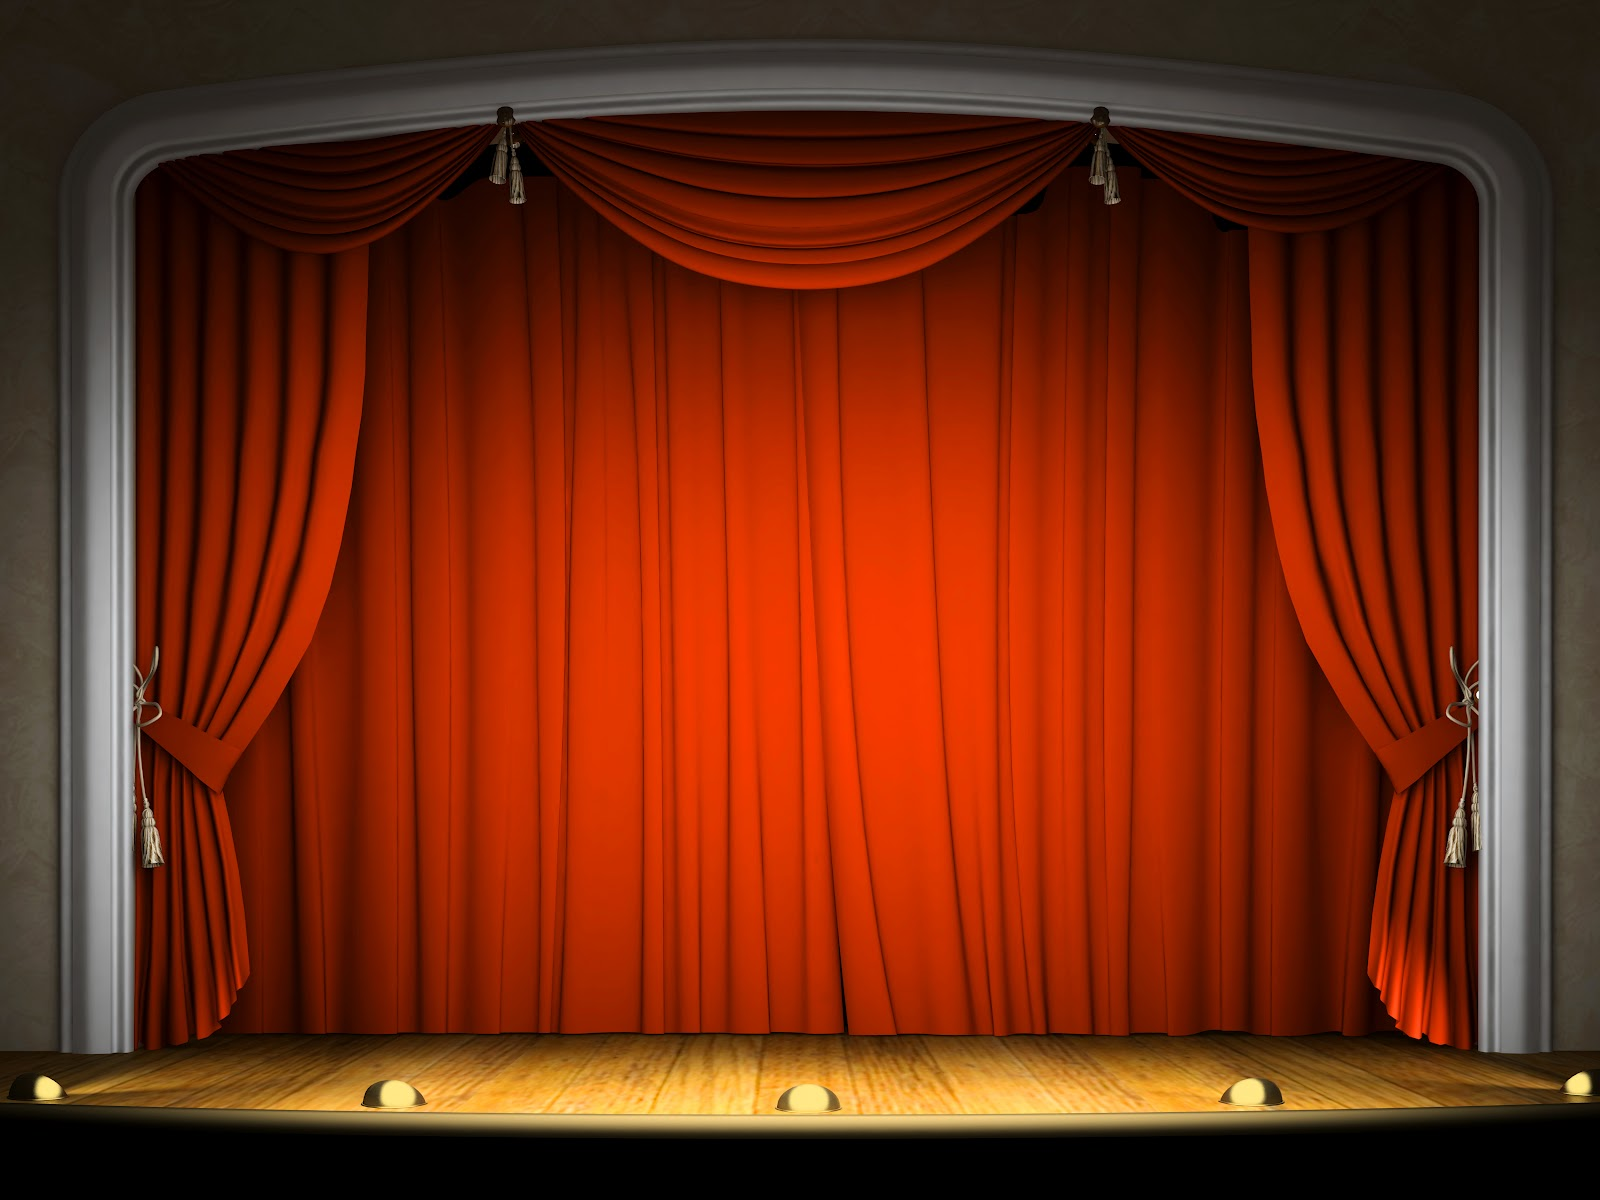 Stage with red curtains png clipart image graphics pinterest - Marcos Gratis Para Fotos Escenarios Jpg